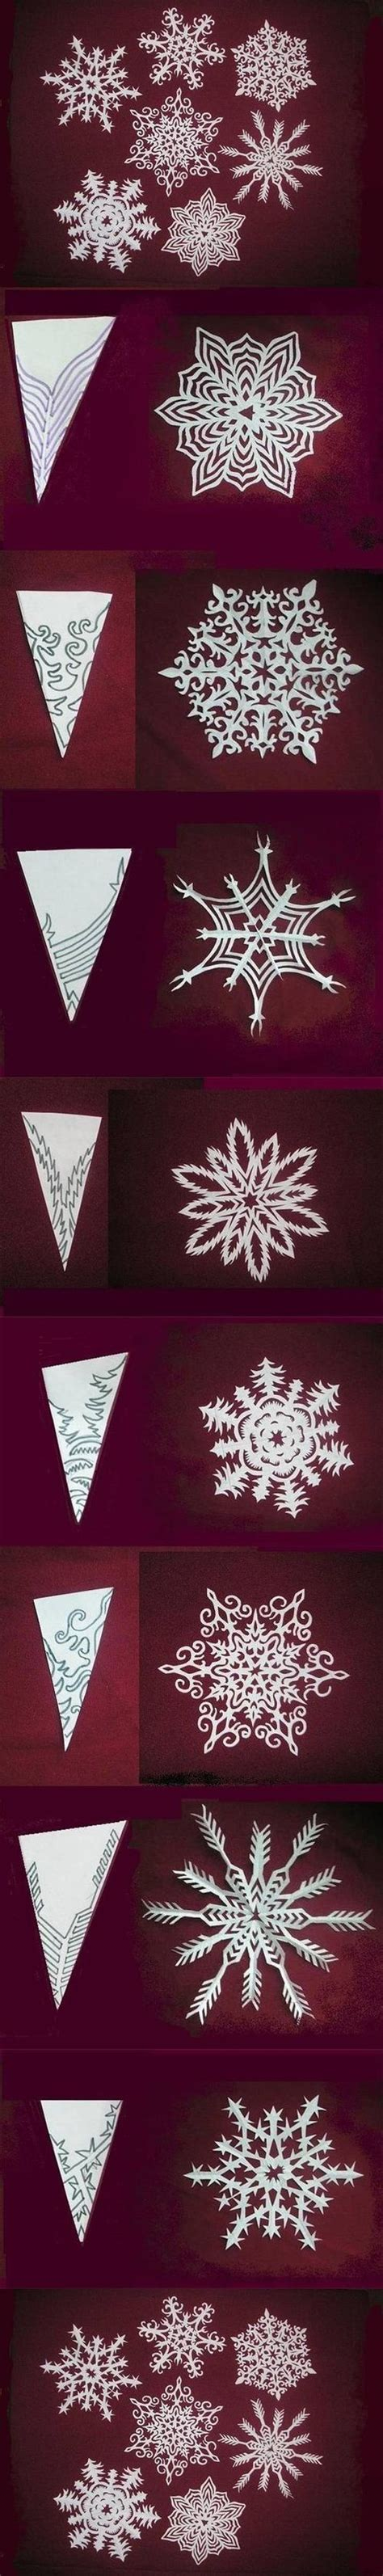 paper snowflake pattern instructions diy snowflakes paper pattern might try to attempt one